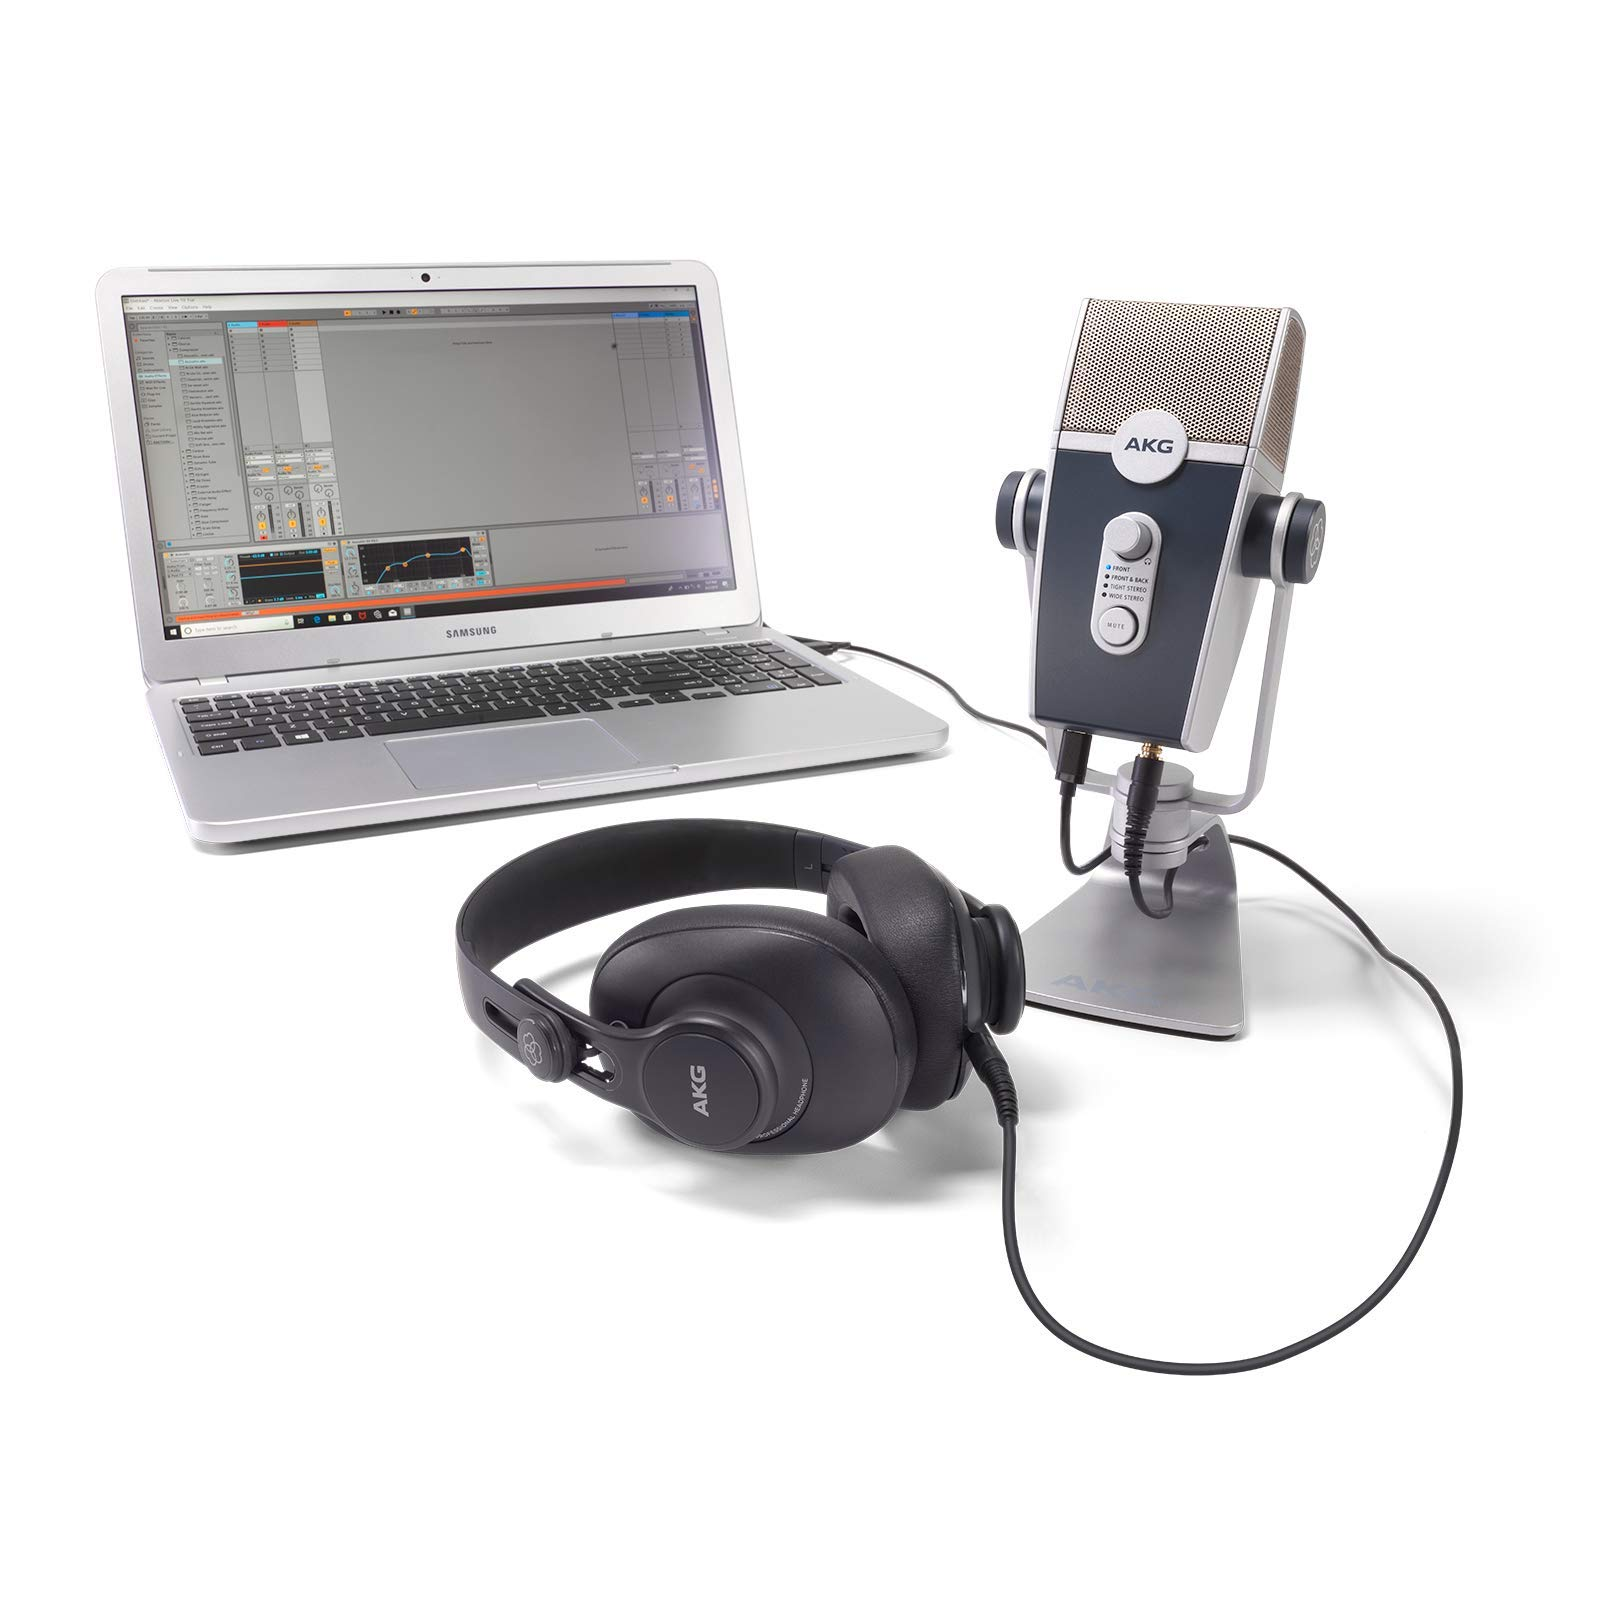 AKG Pro Audio Podcaster Essentials Kit for Streamers, Vloggers, and Gamers-Includes Lyra USB-C Microphone, K371 Headphones, and Ableton Lite Software